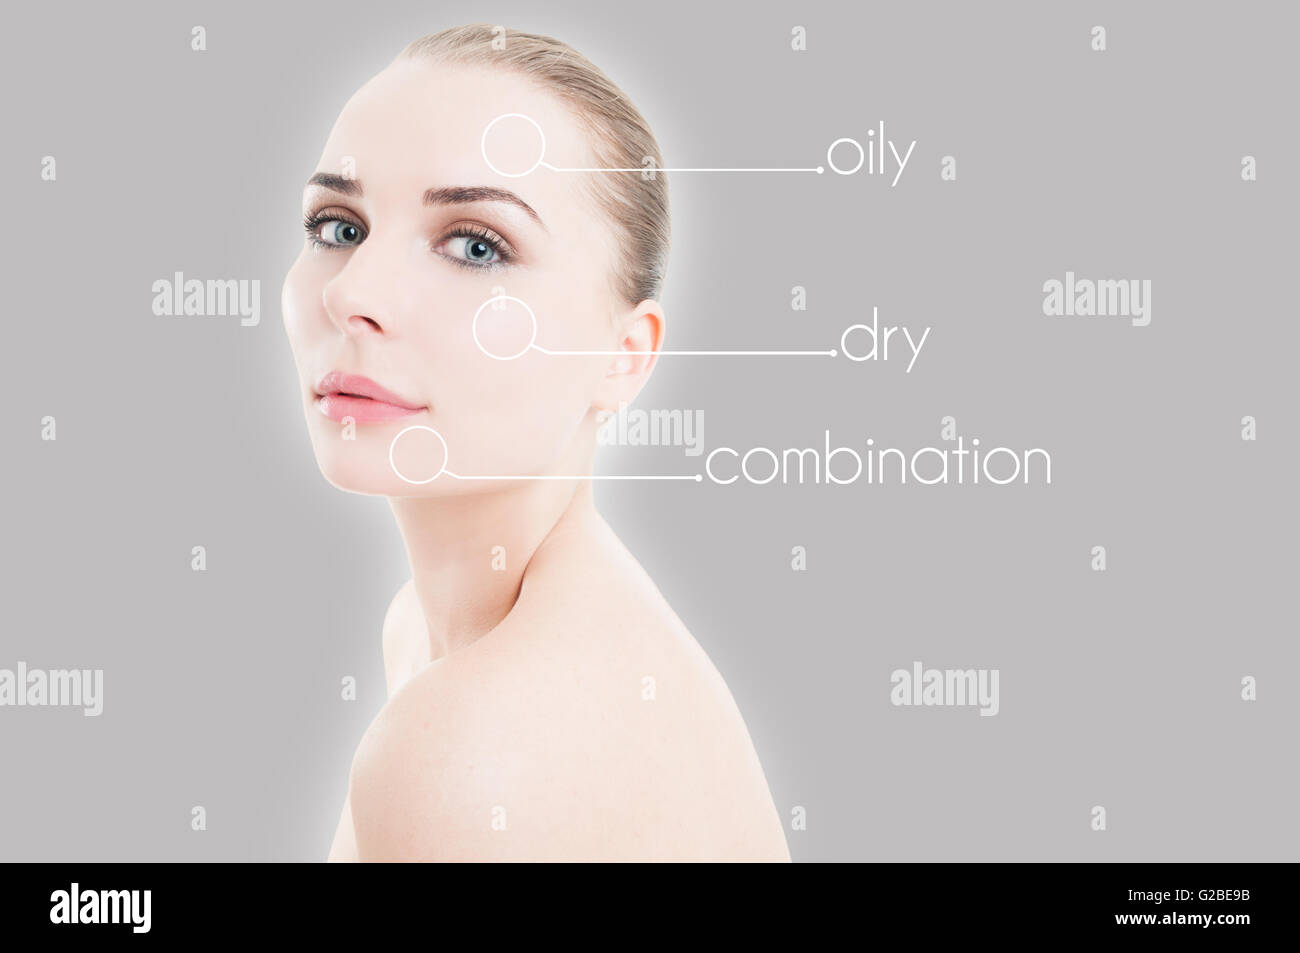 Young attractive female with indicators on her face as cosmetology concept against gray background - Stock Image